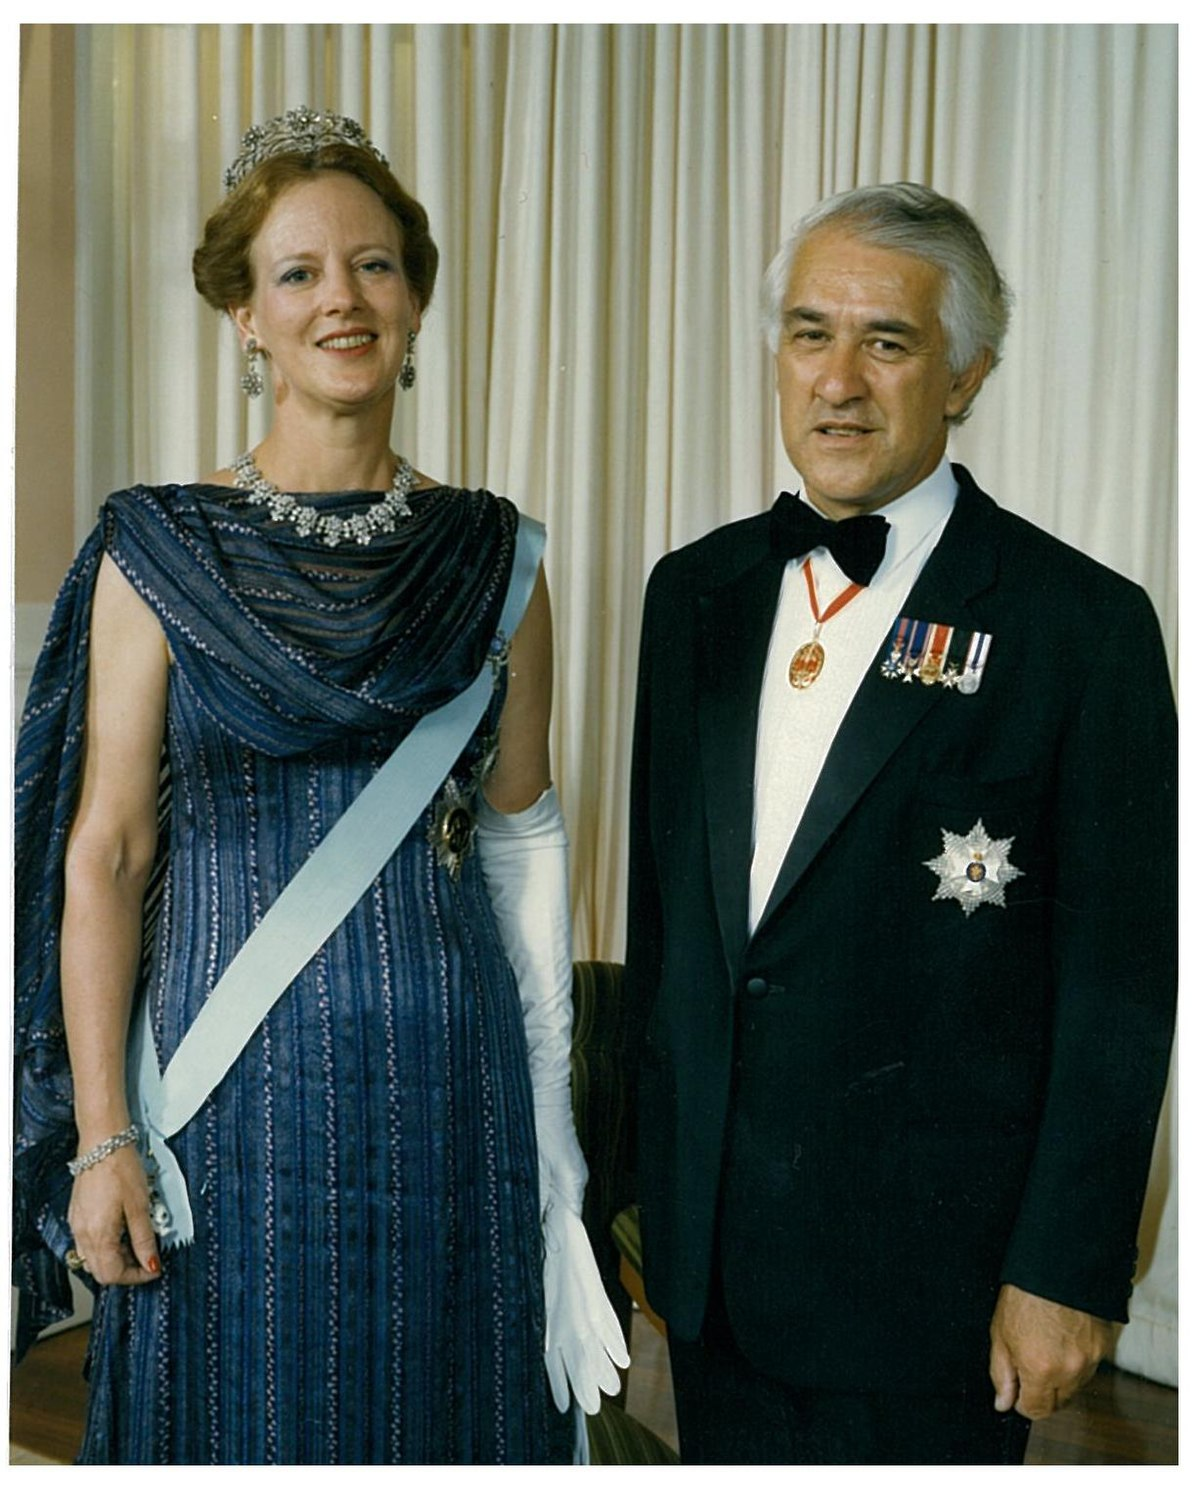 Sir Paul Reeves and Queen Margrethe II Denmark.jpg